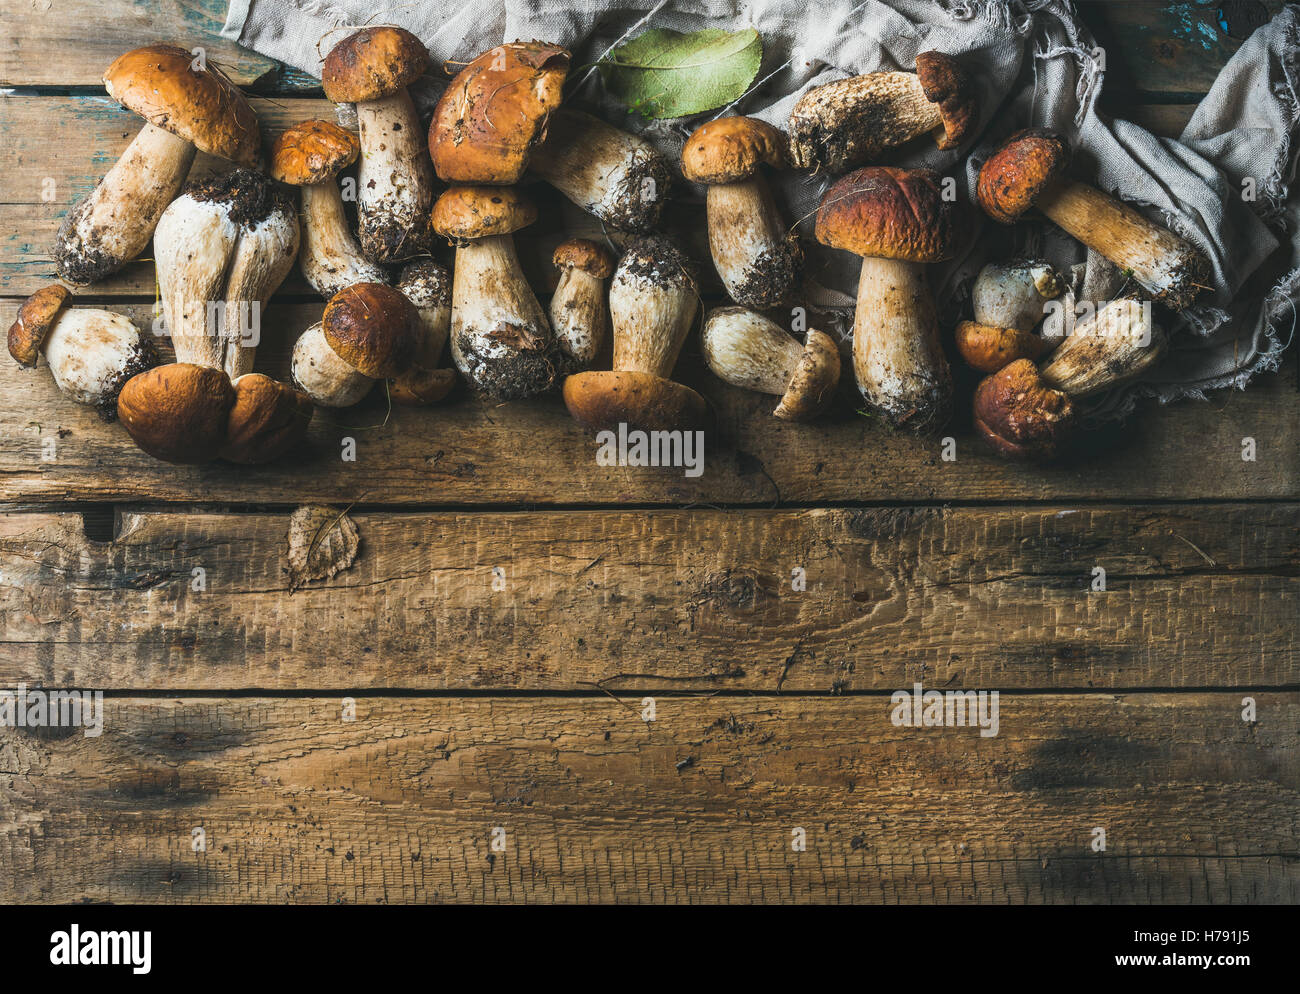 Fresh uncooked white forest mushrooms on wooden background - Stock Image